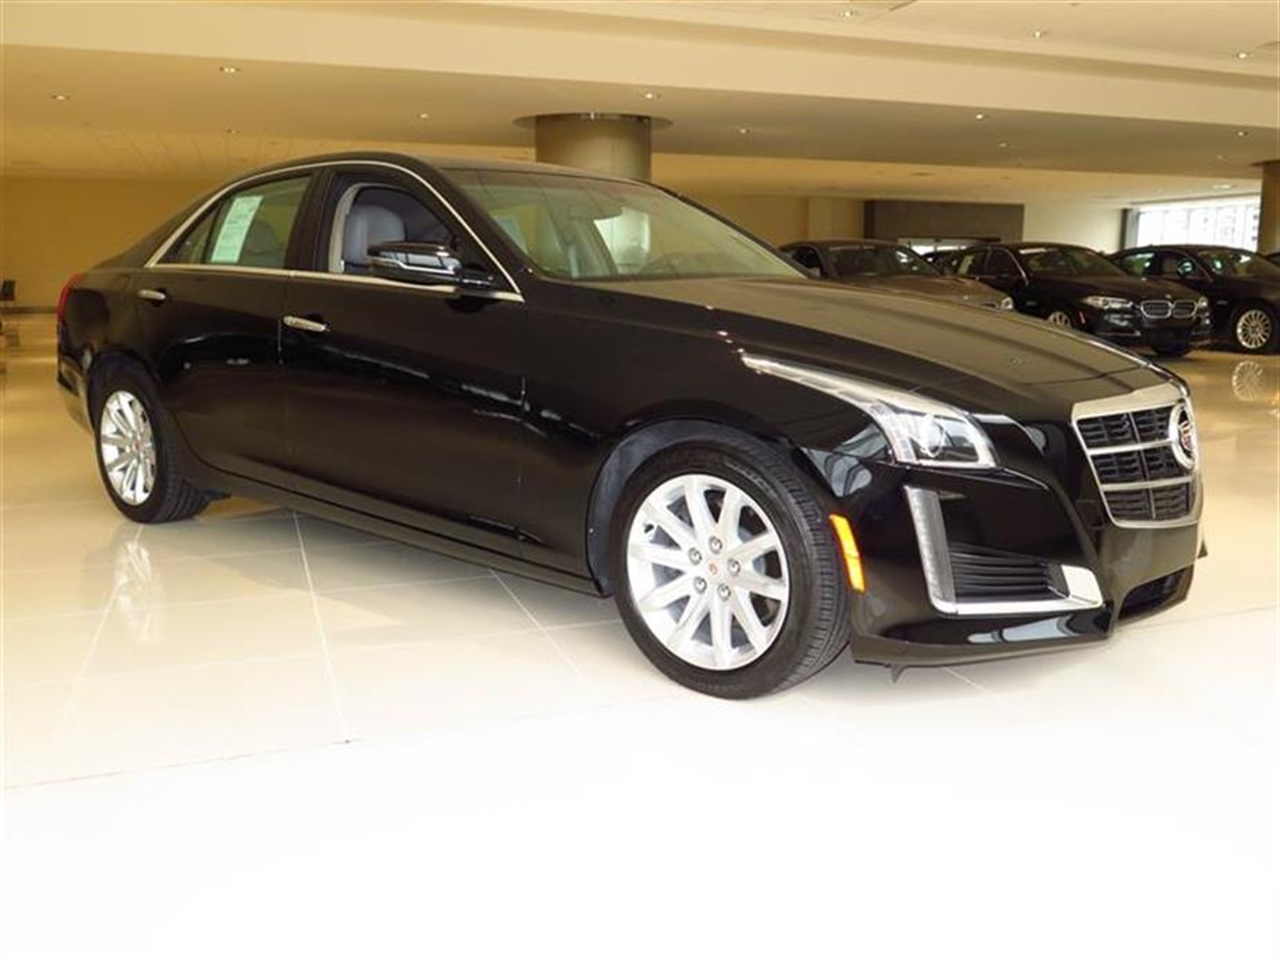 2014 CADILLAC CTS 4dr Sdn 20L Turbo RWD 5945 miles Adaptive Remote Start Air filtration system